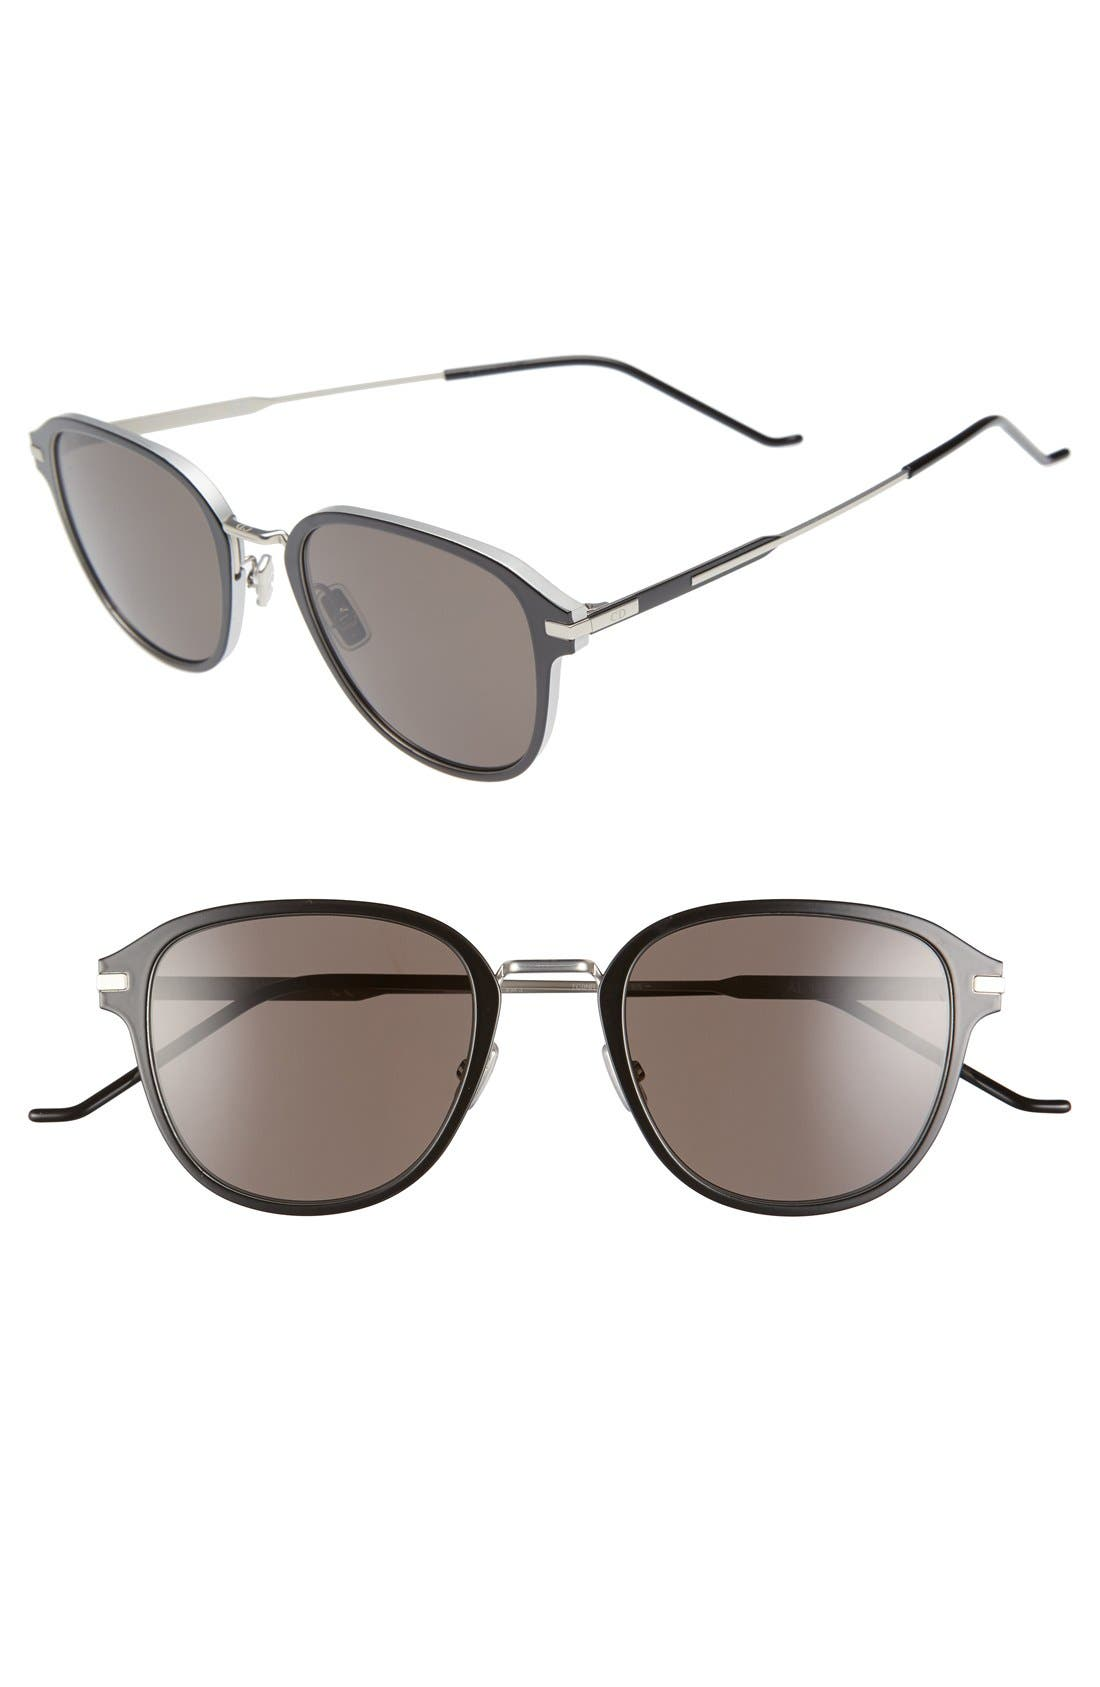 Main Image - Dior Homme 55mm Wire Sunglasses